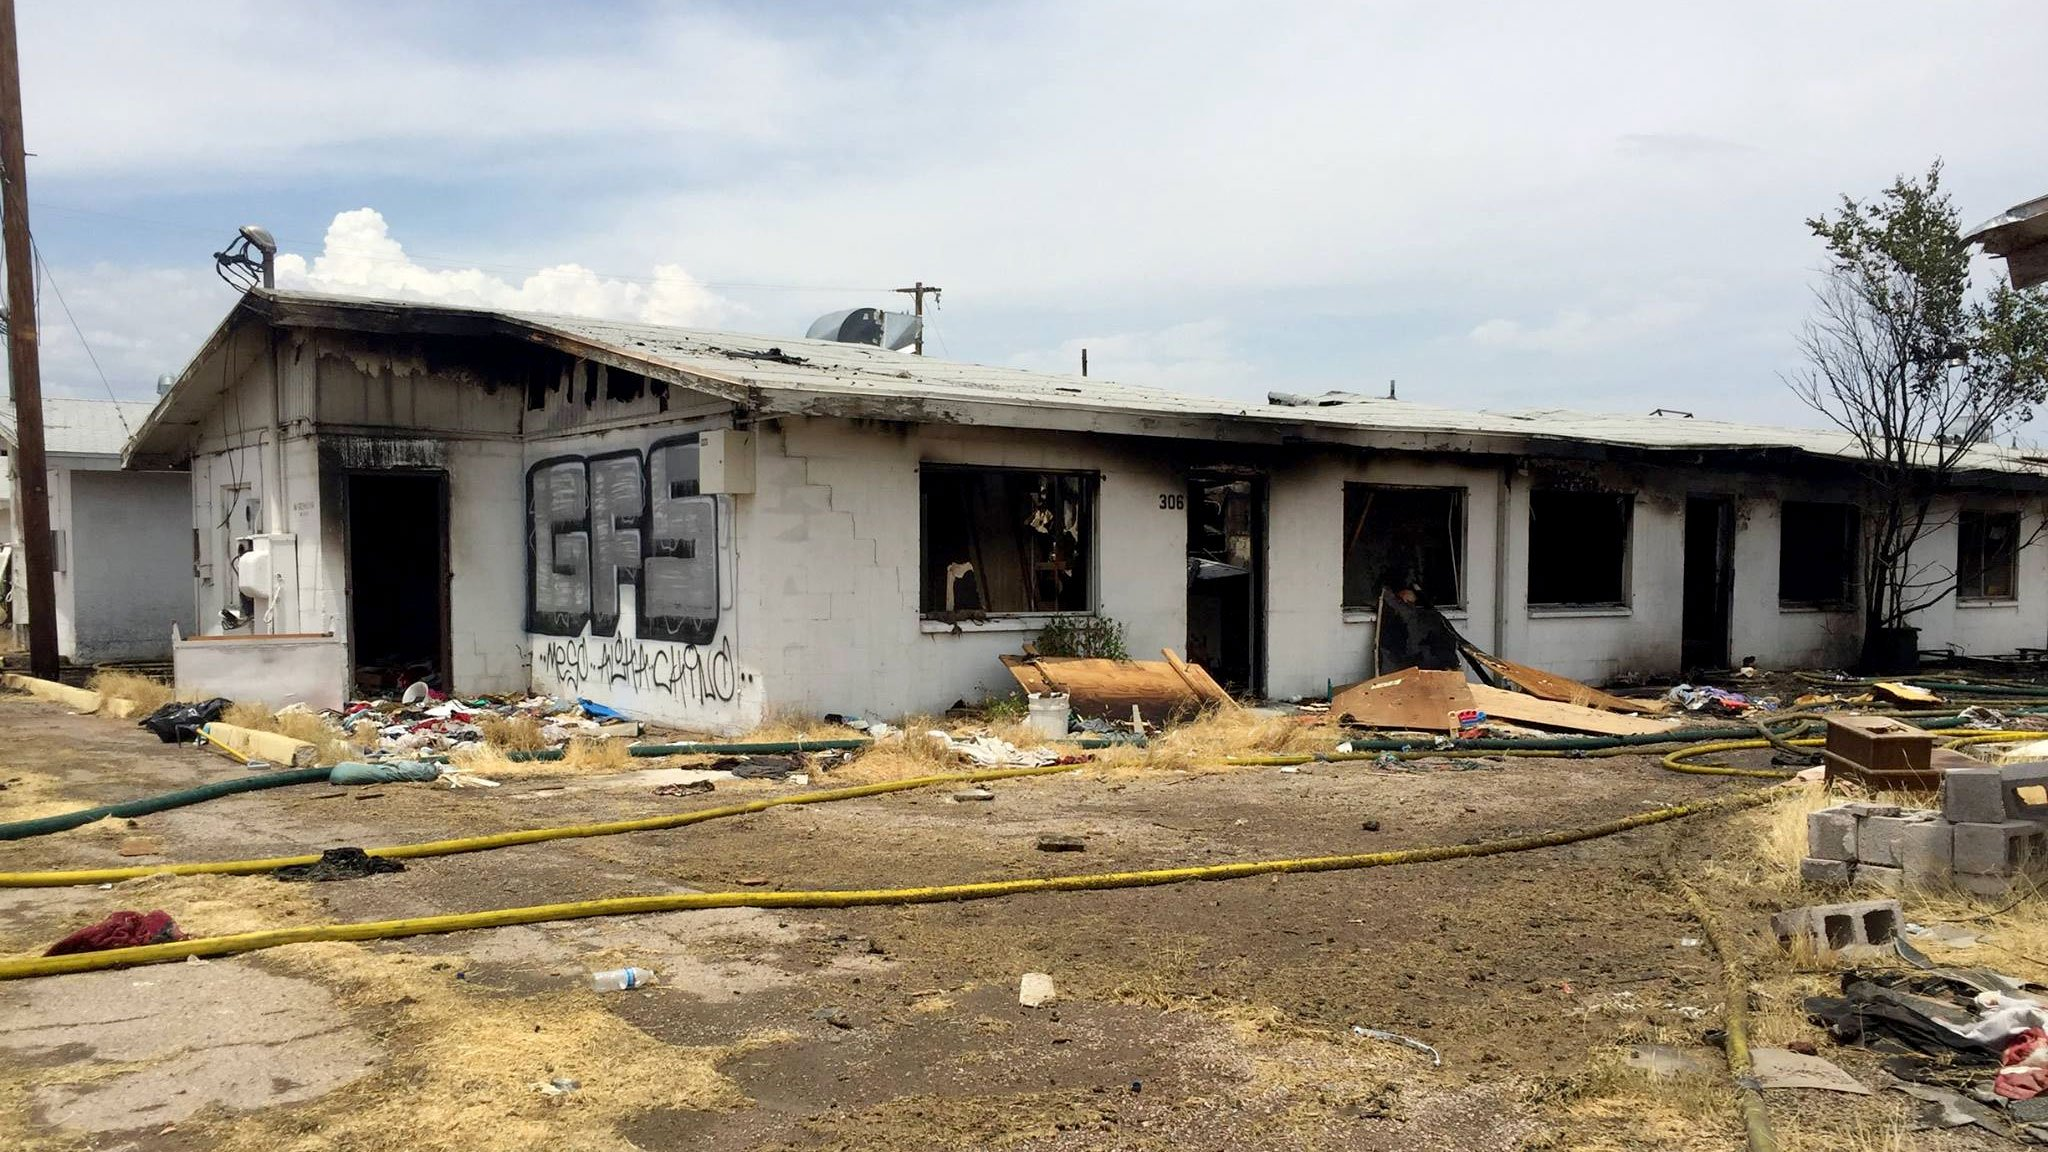 Firefighters responded to another fire at Tree Line Apartments on July 10, 2017.